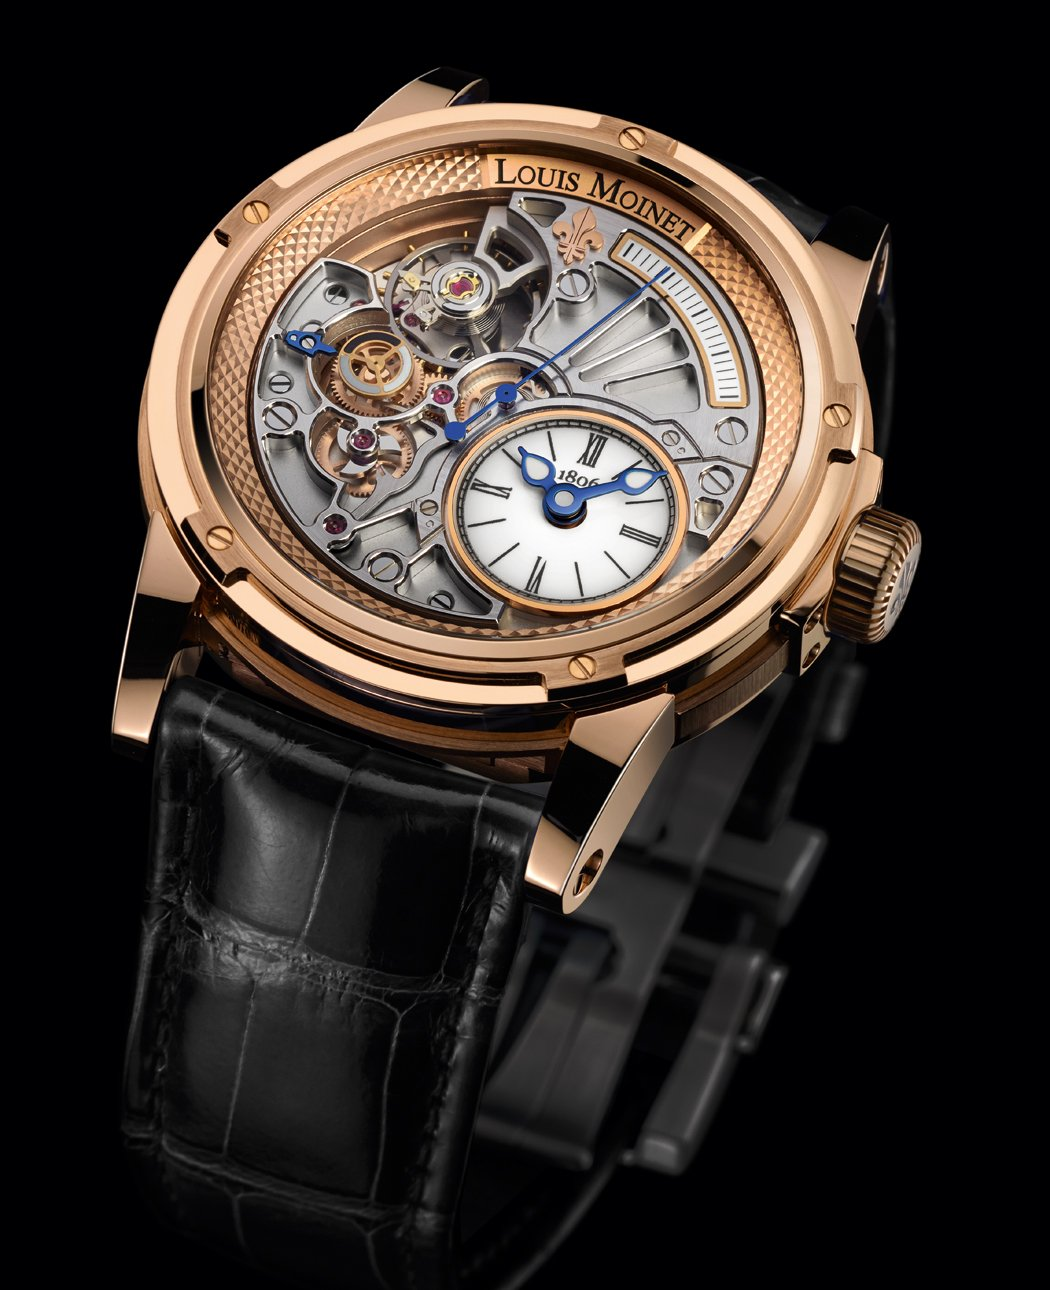 20-SECOND TEMPOGRAPH de Louis Moinet